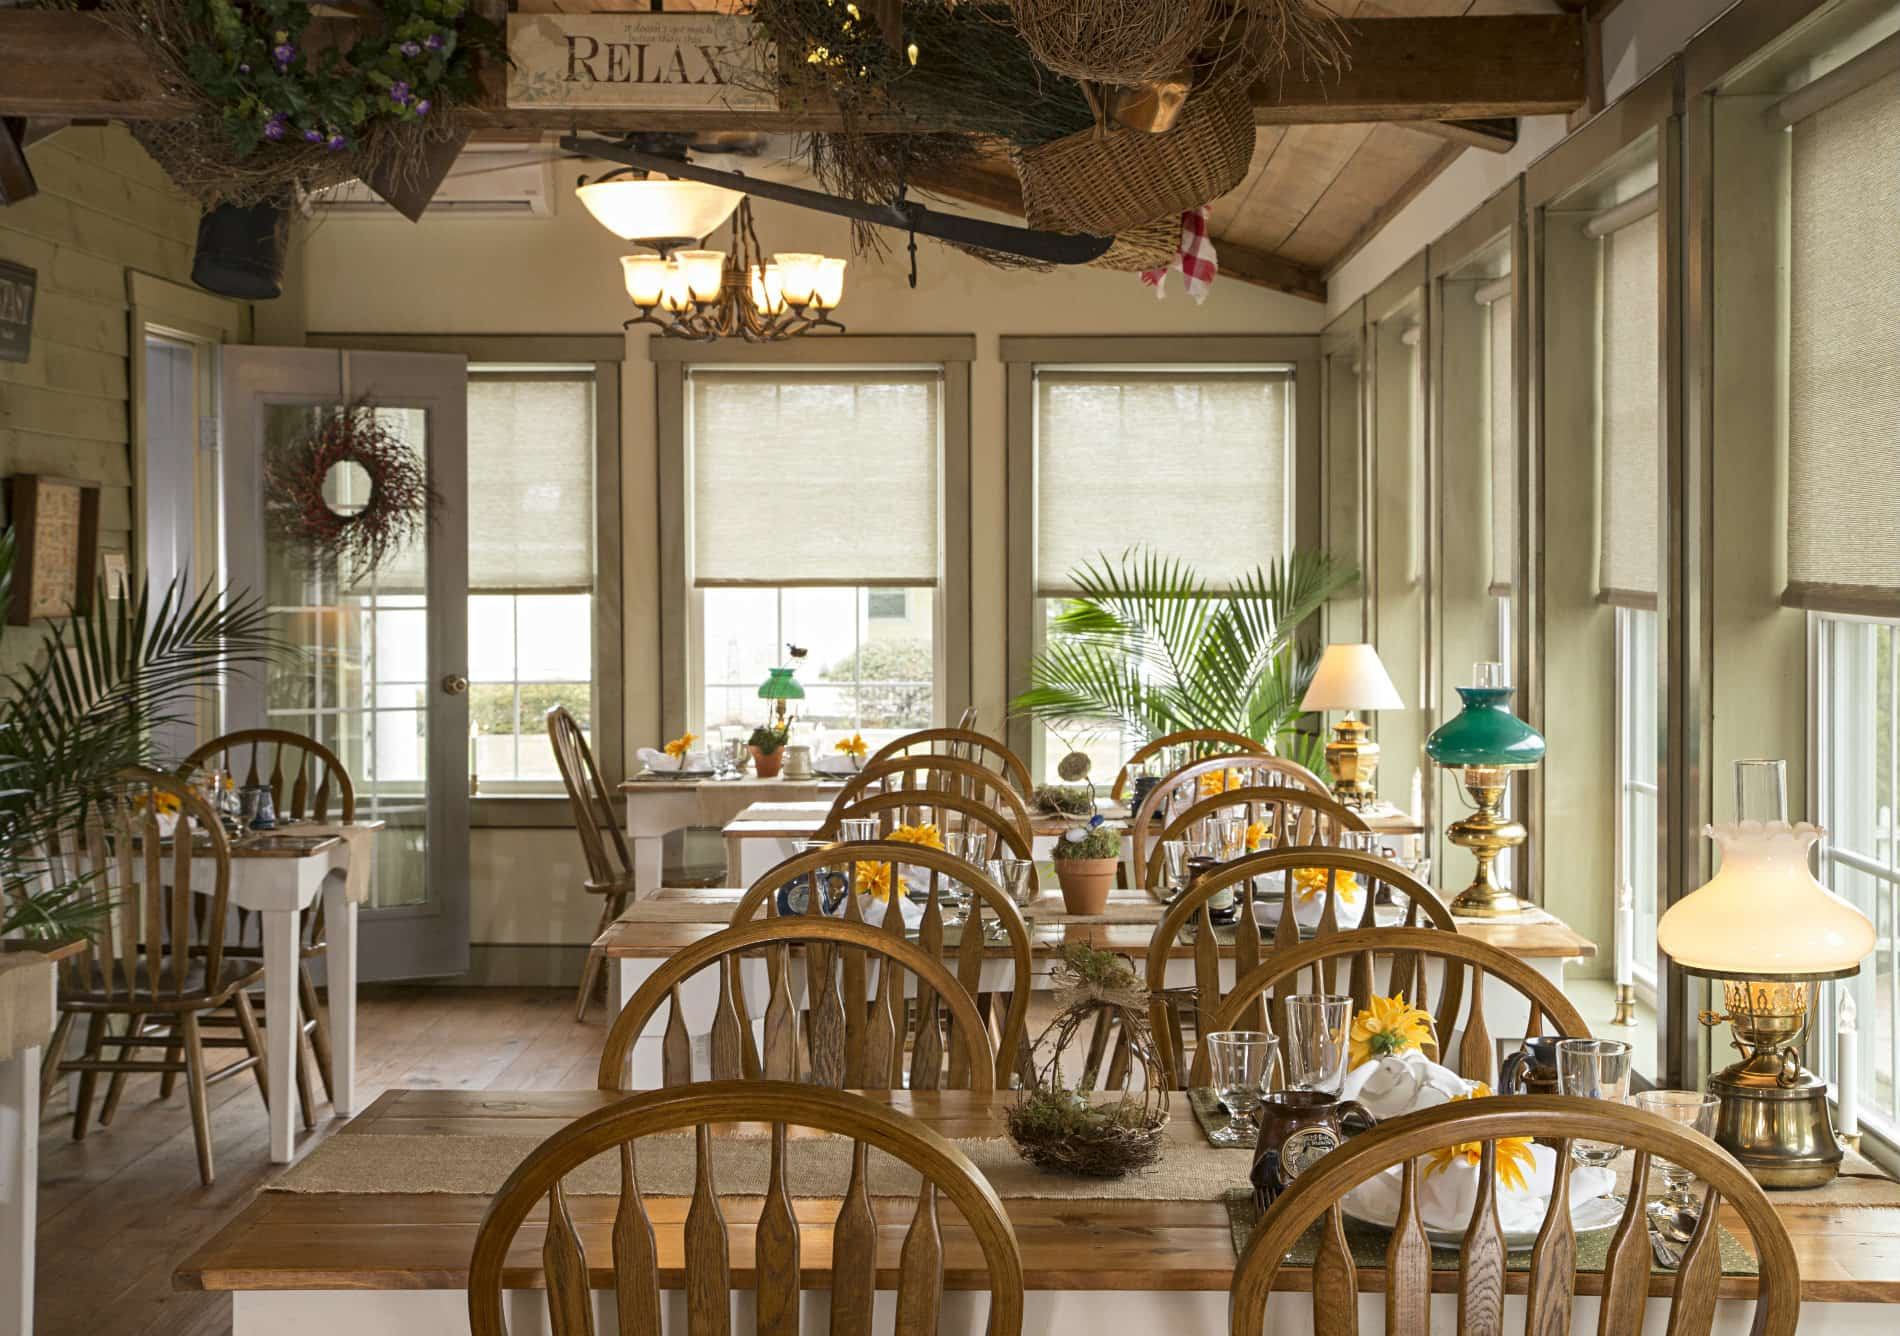 cream colored breakfast room with wooden ceiling beams, 5 white and natural wood tables with white and green oil lamps and yellow flowers